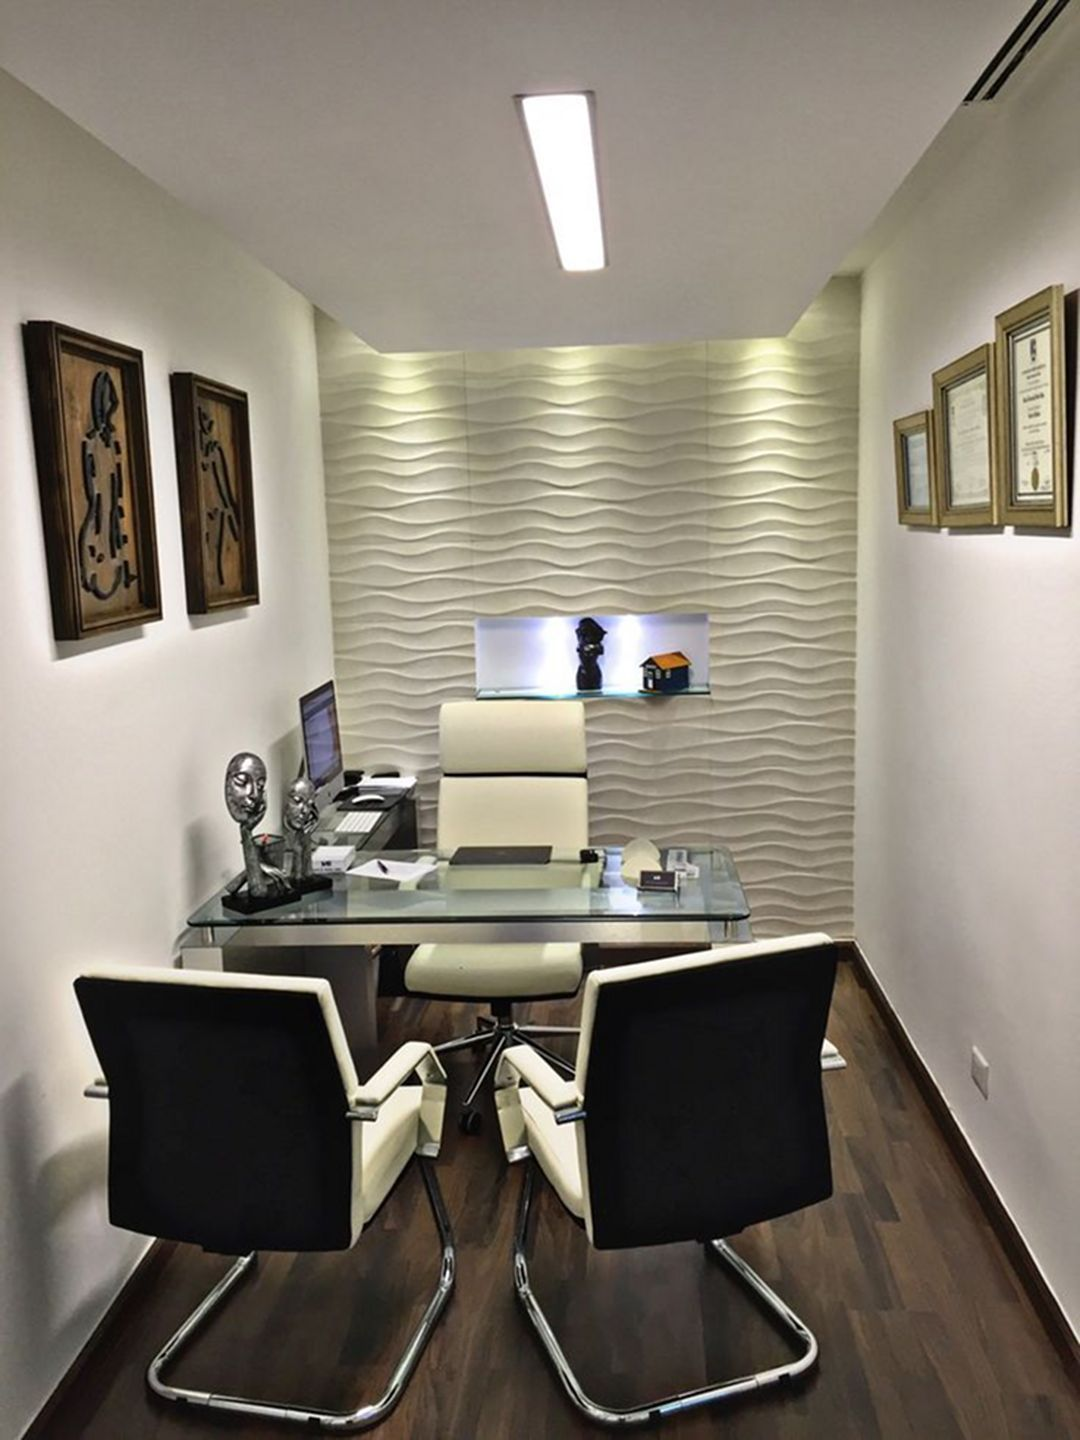 Small Office Design To Increase Small Office Design Medical Office Decor Home Office Design